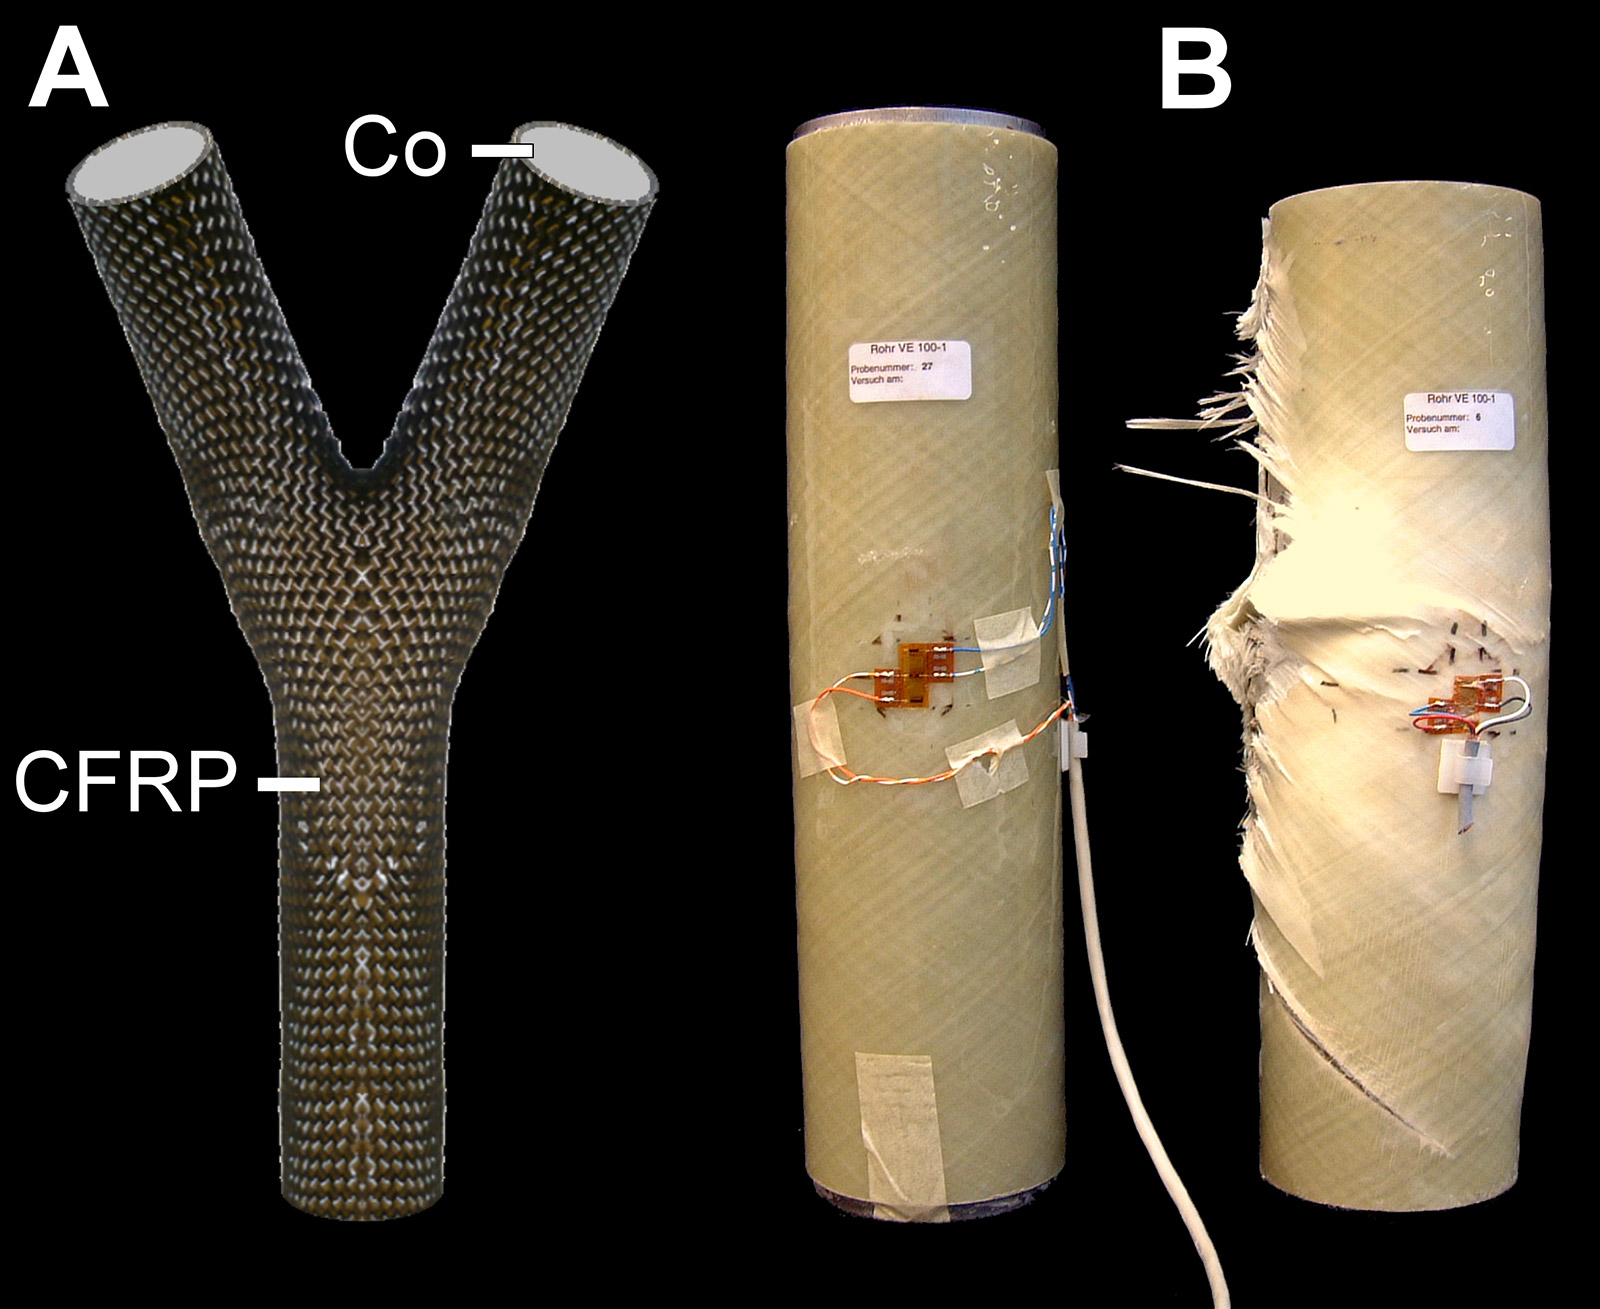 Left: novel biomimetic carbon fibre-reinforced polymer (CFRP) developed by the ITV that can be filled with concrete. Right: specimen for preliminary test on FRP confined concrete before loading.